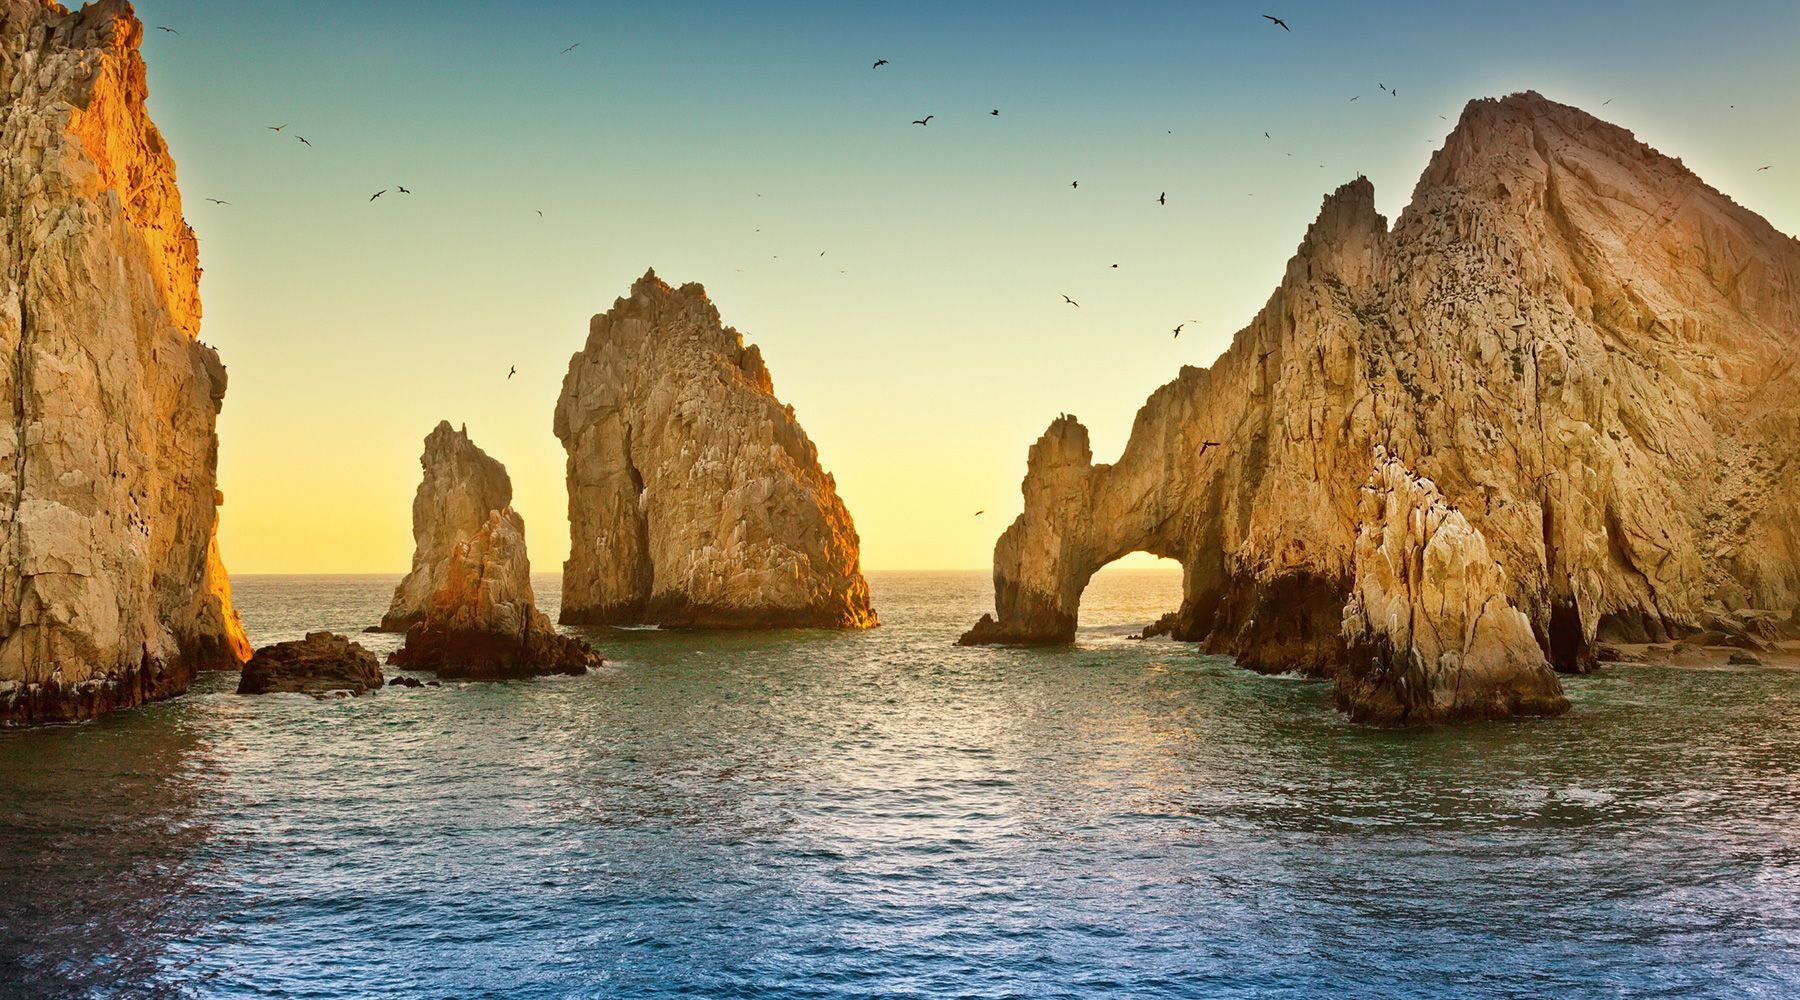 Located at the southern tip of the Baja California peninsula in the Mexican state of Baja California Sur, Cabo San Lucas is one of Mexico's leading tourist destinations.